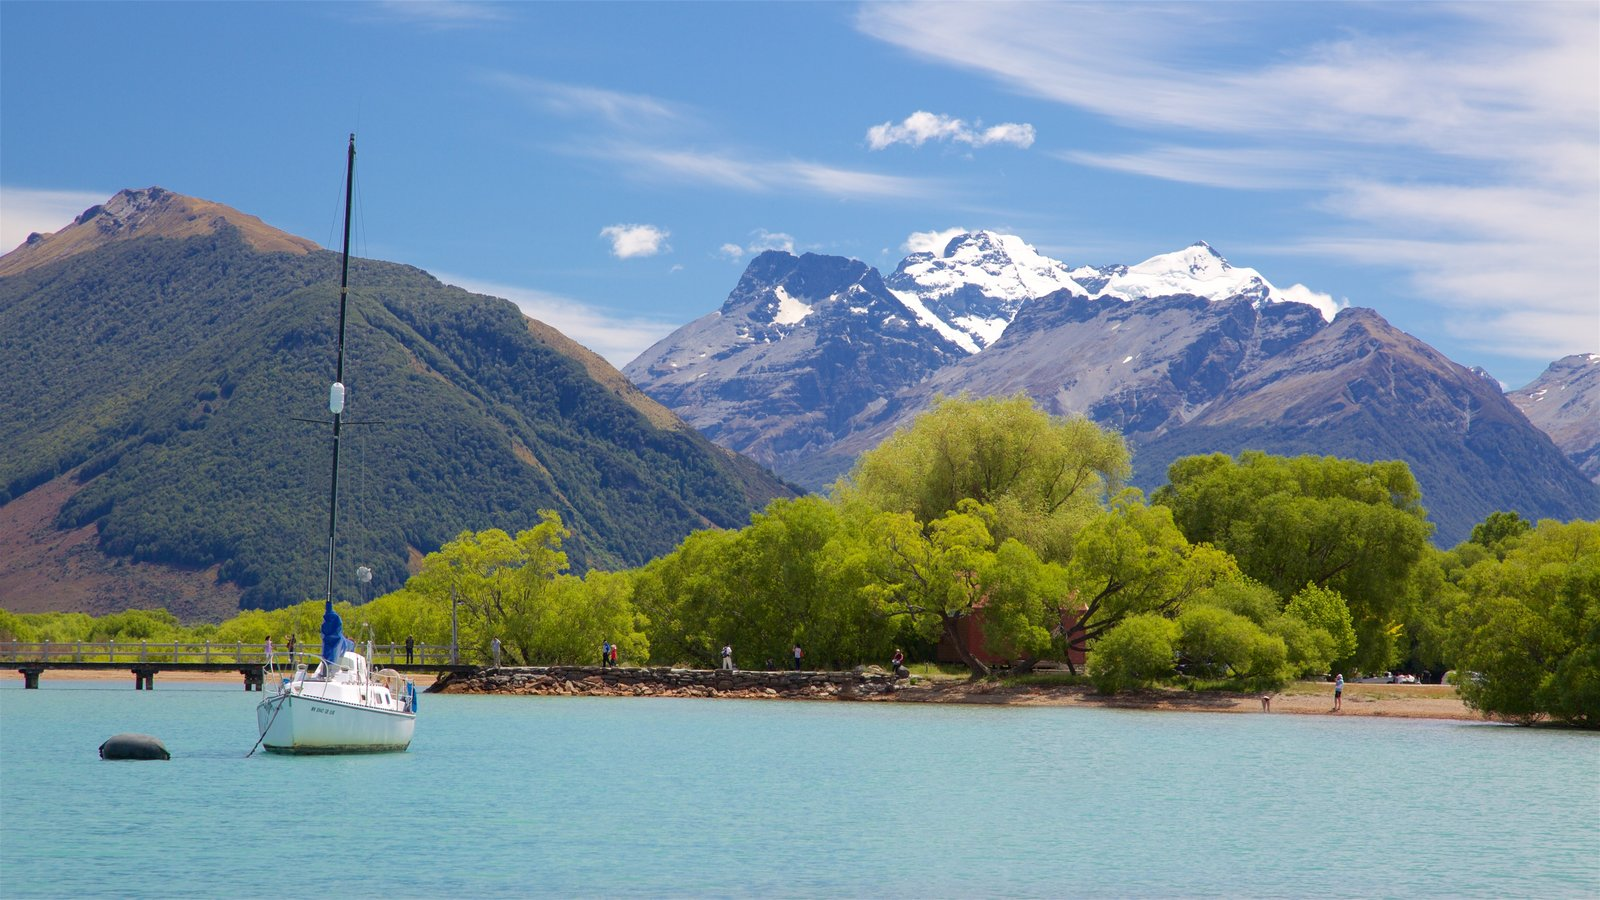 Glenorchy which includes a lake or waterhole, sailing and mountains